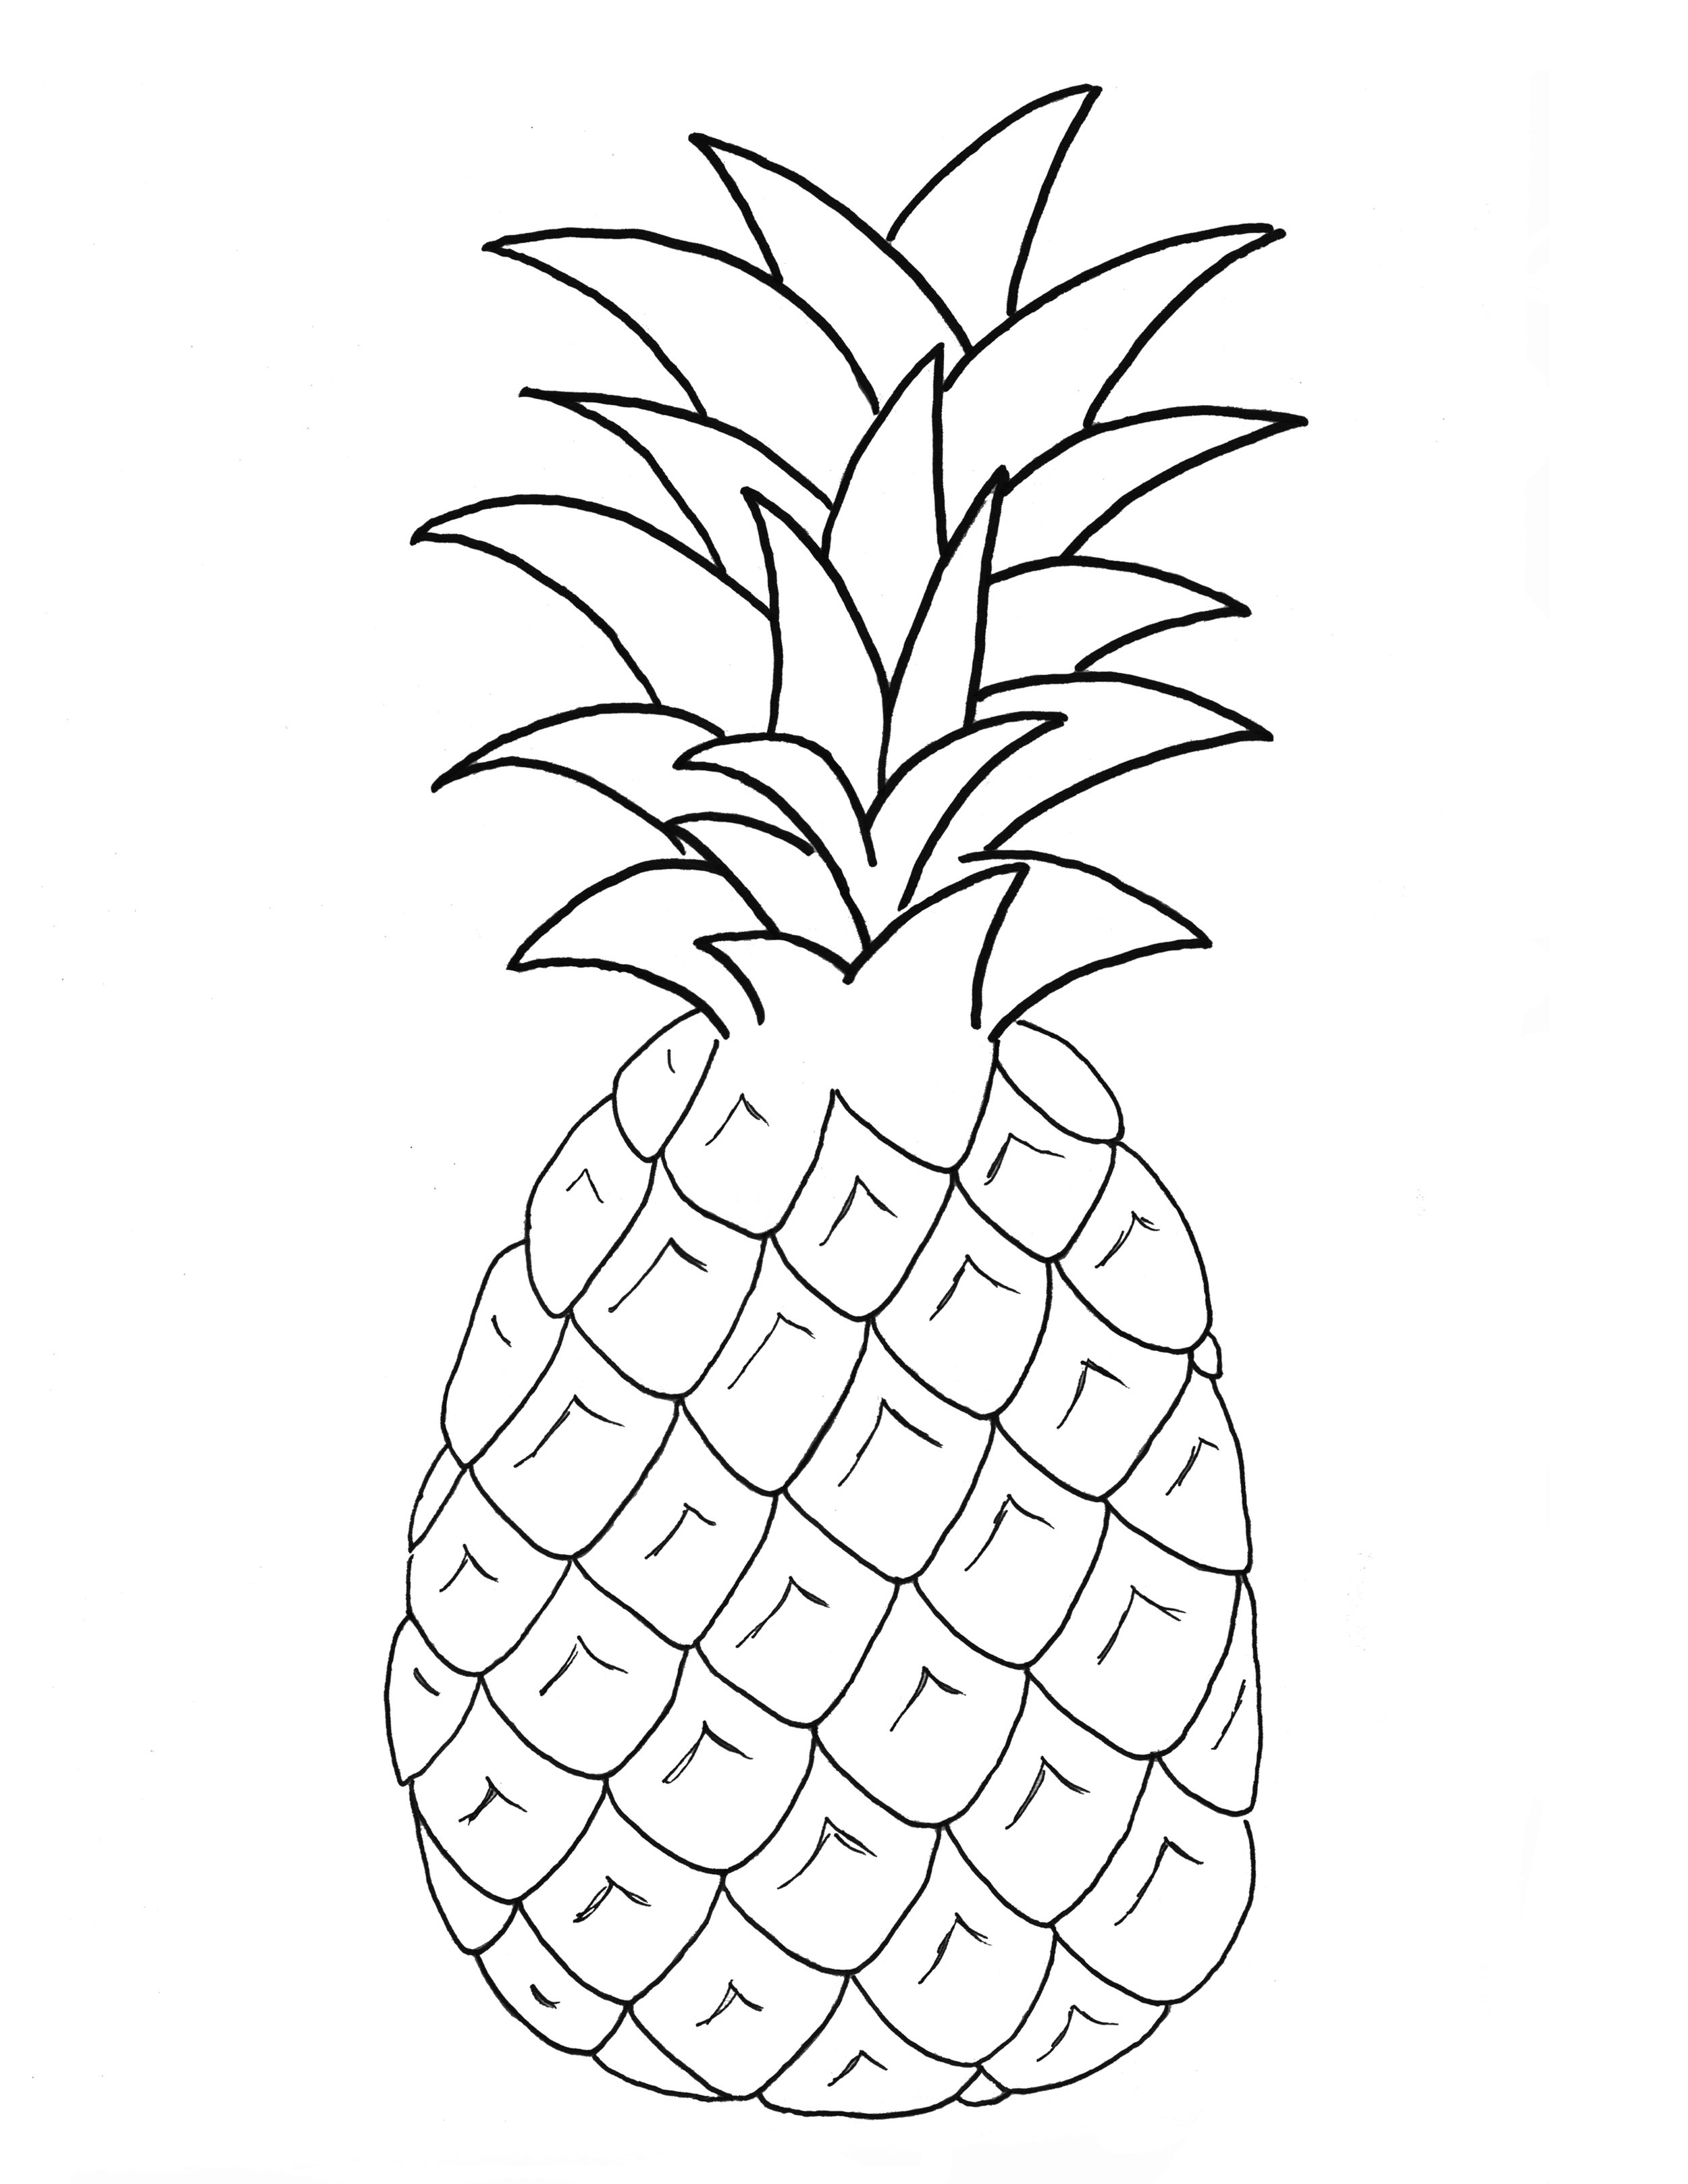 CB-Pineapple.jpg